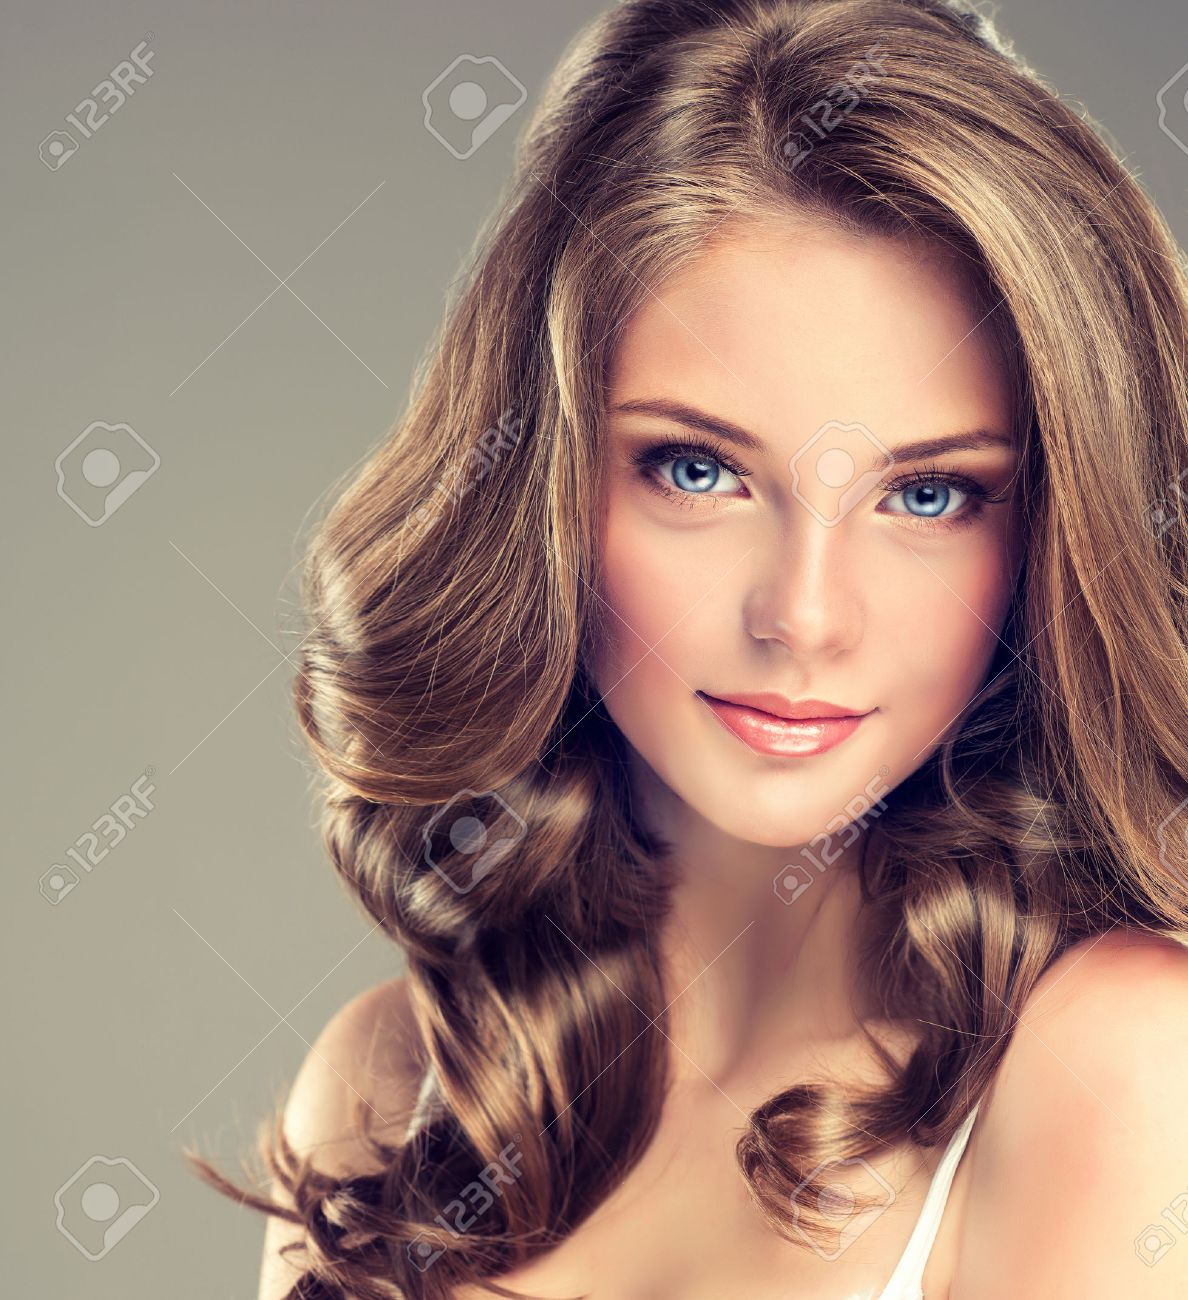 Beautiful Girl With Perfect Skin, Thick Curly Hair Stock ...